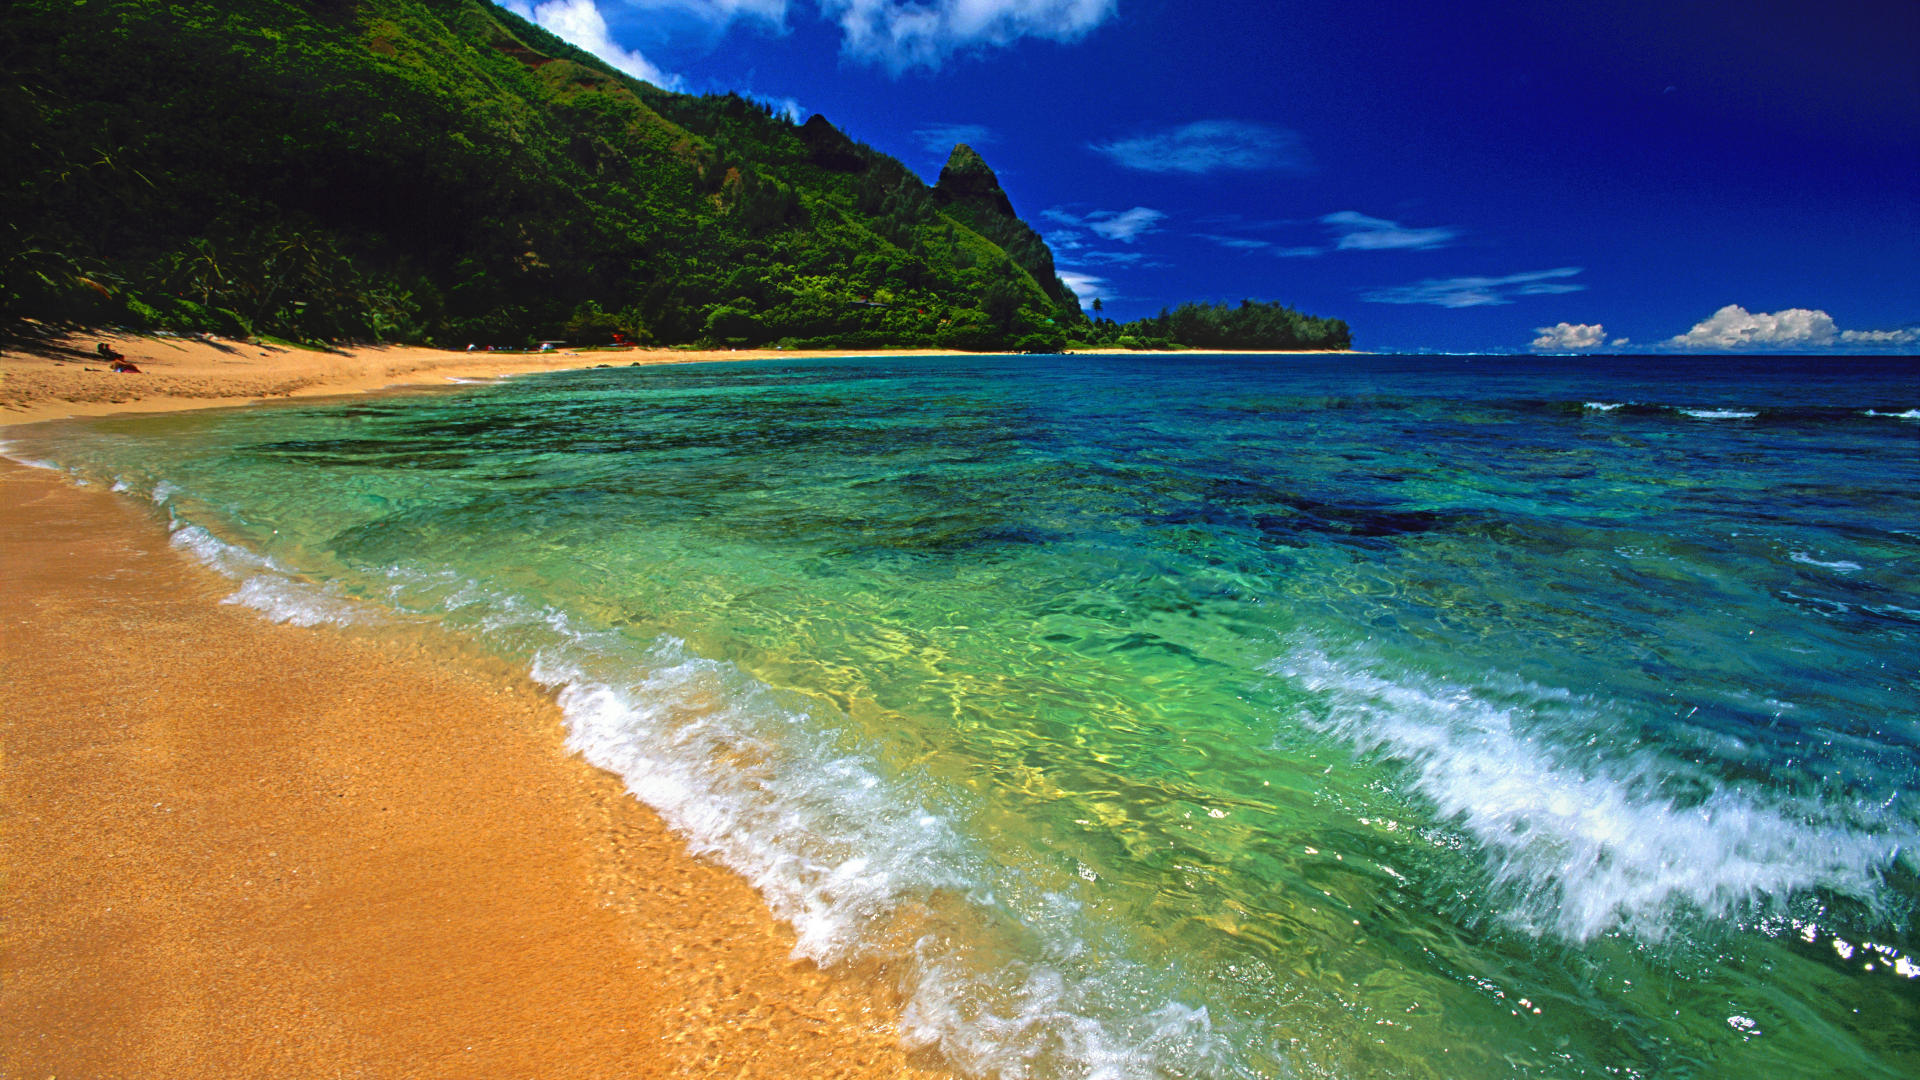 Beach Desktop Backgrounds and Wallpaper   Tunnels Beach Kauai Hawaii 1920x1080